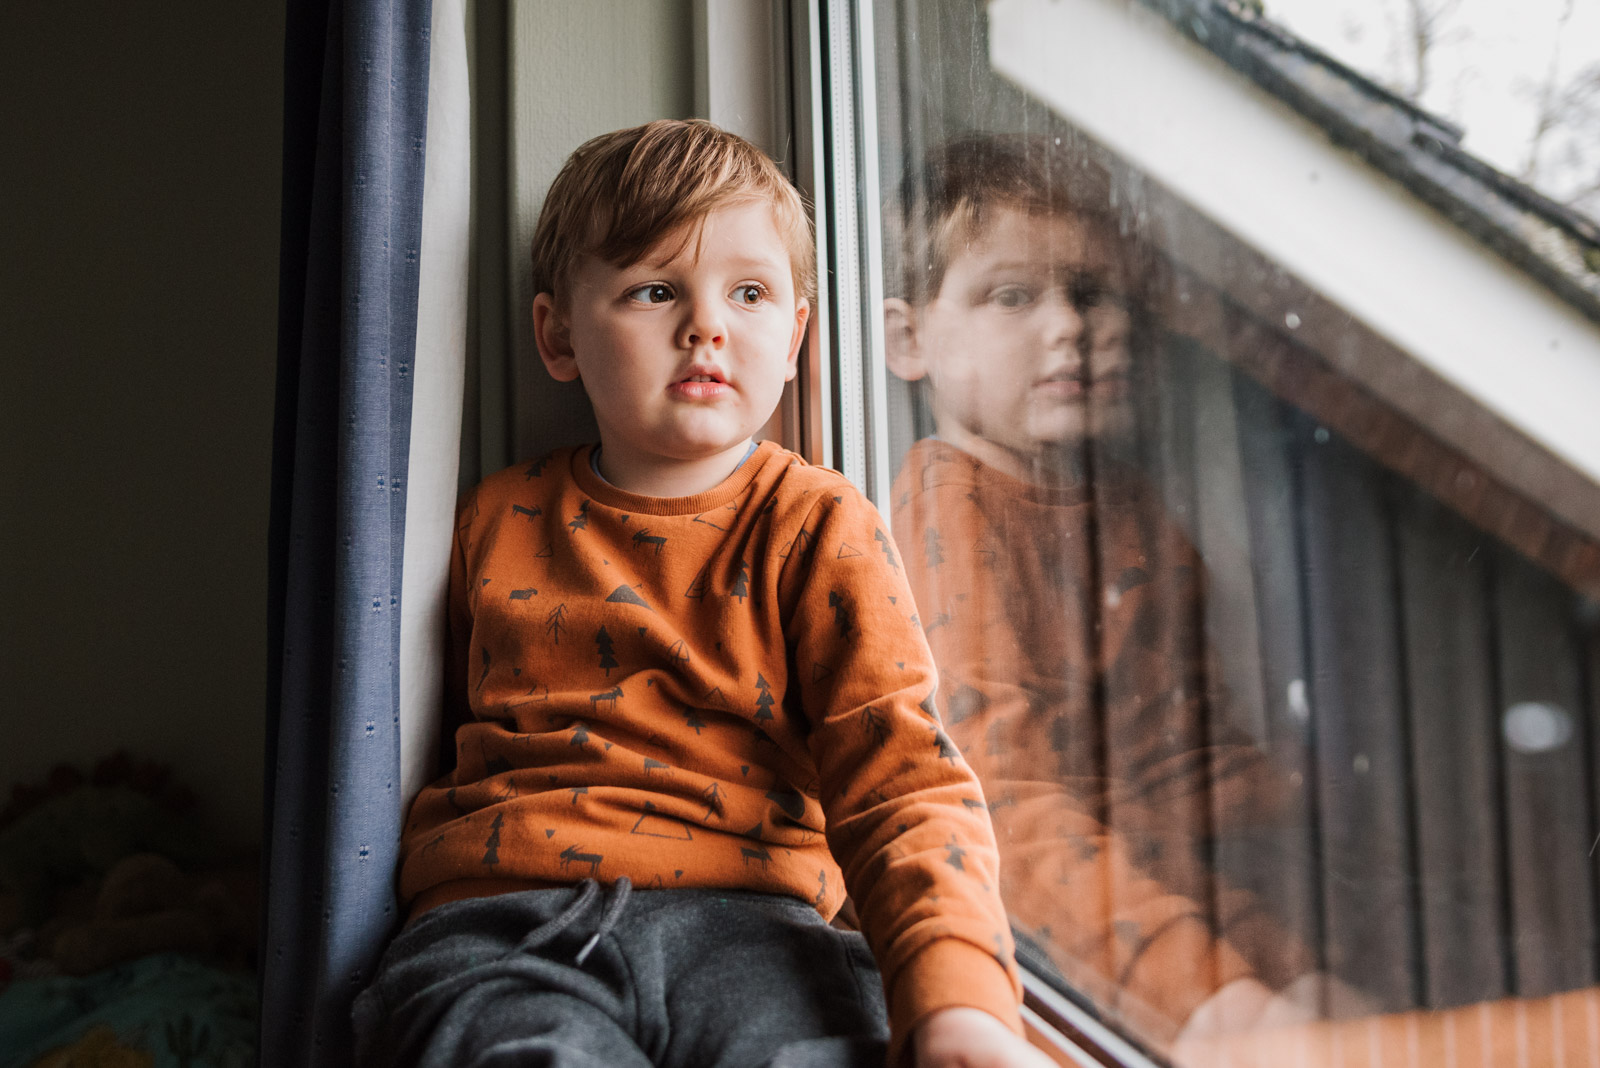 Natural family photography, boy looking out of window, The Ginger Collective